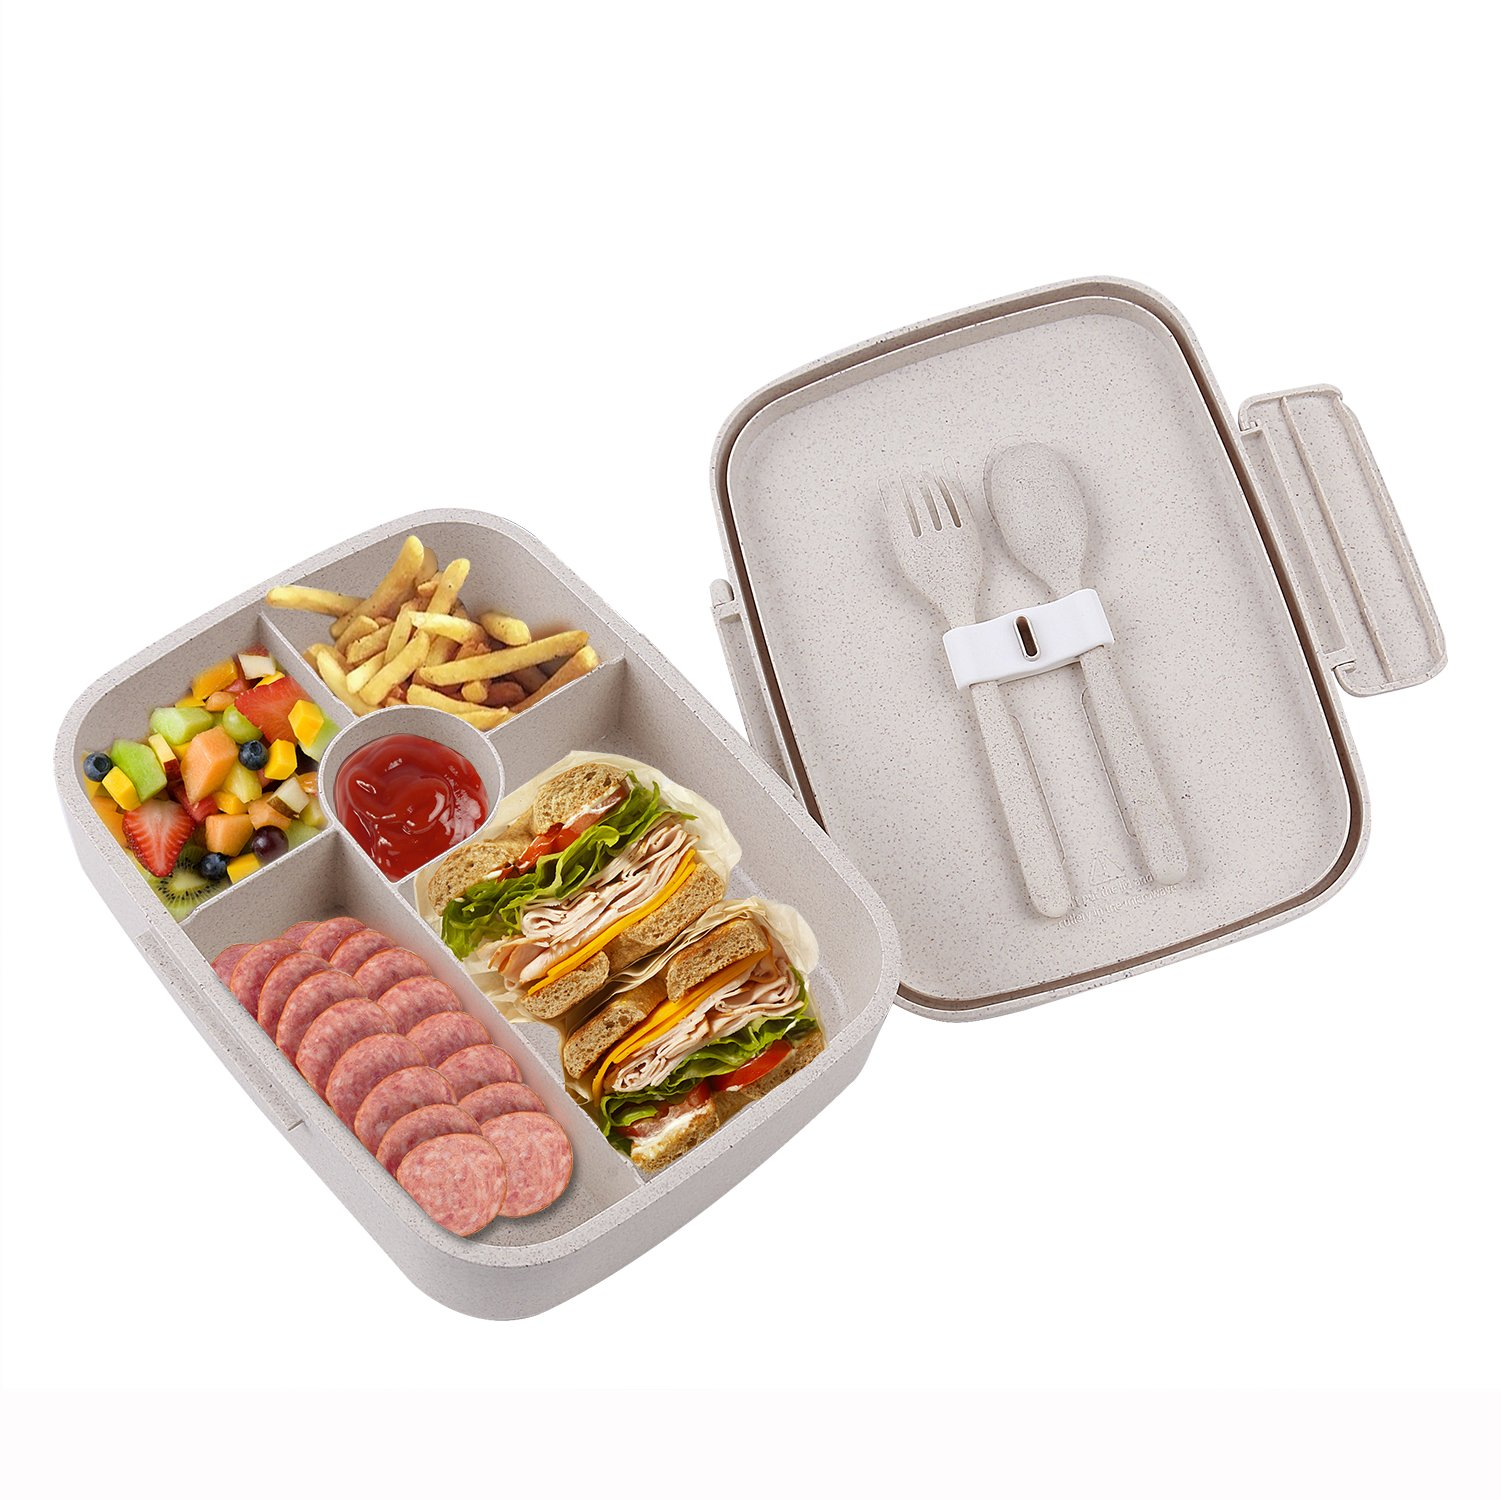 BRIGENIUS Bento Lunch Box For Kids Adults With 5 Compartment, Leakproof, Microwave Dishwasher Safe, Healthy BPA Free (Fork & Spoon INCLUDED)